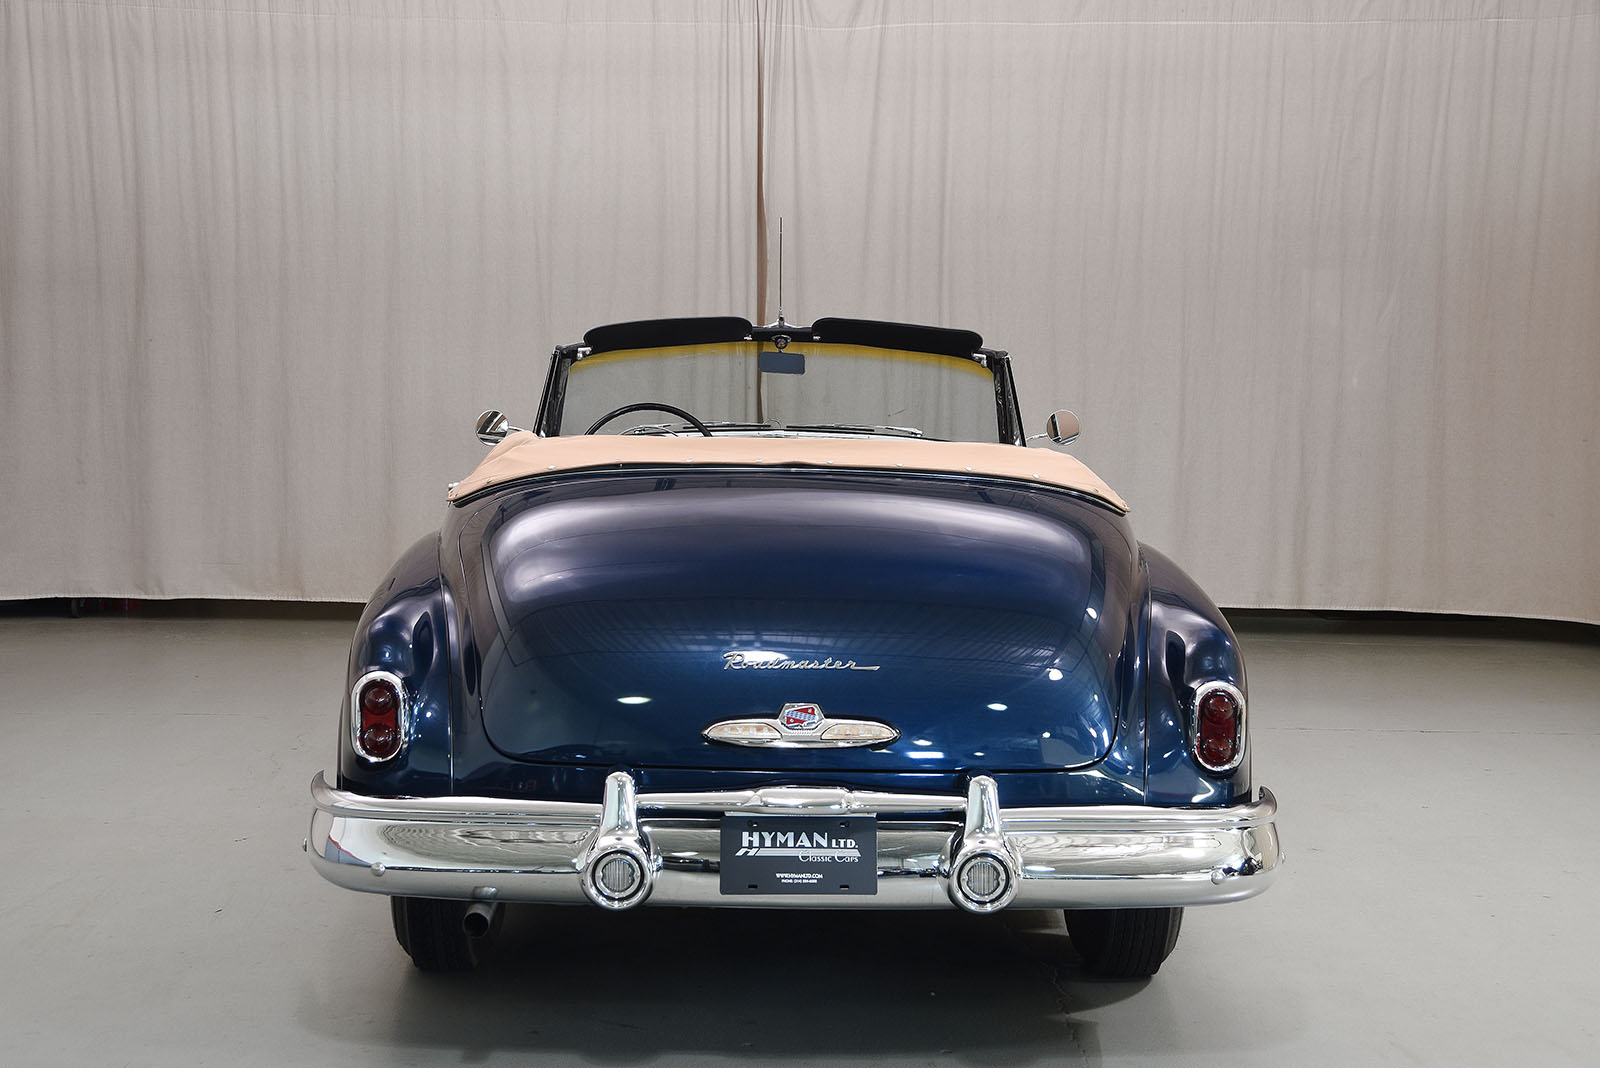 1950 Buick Roadmaster Convertible Classic Cars Hyman Ltd